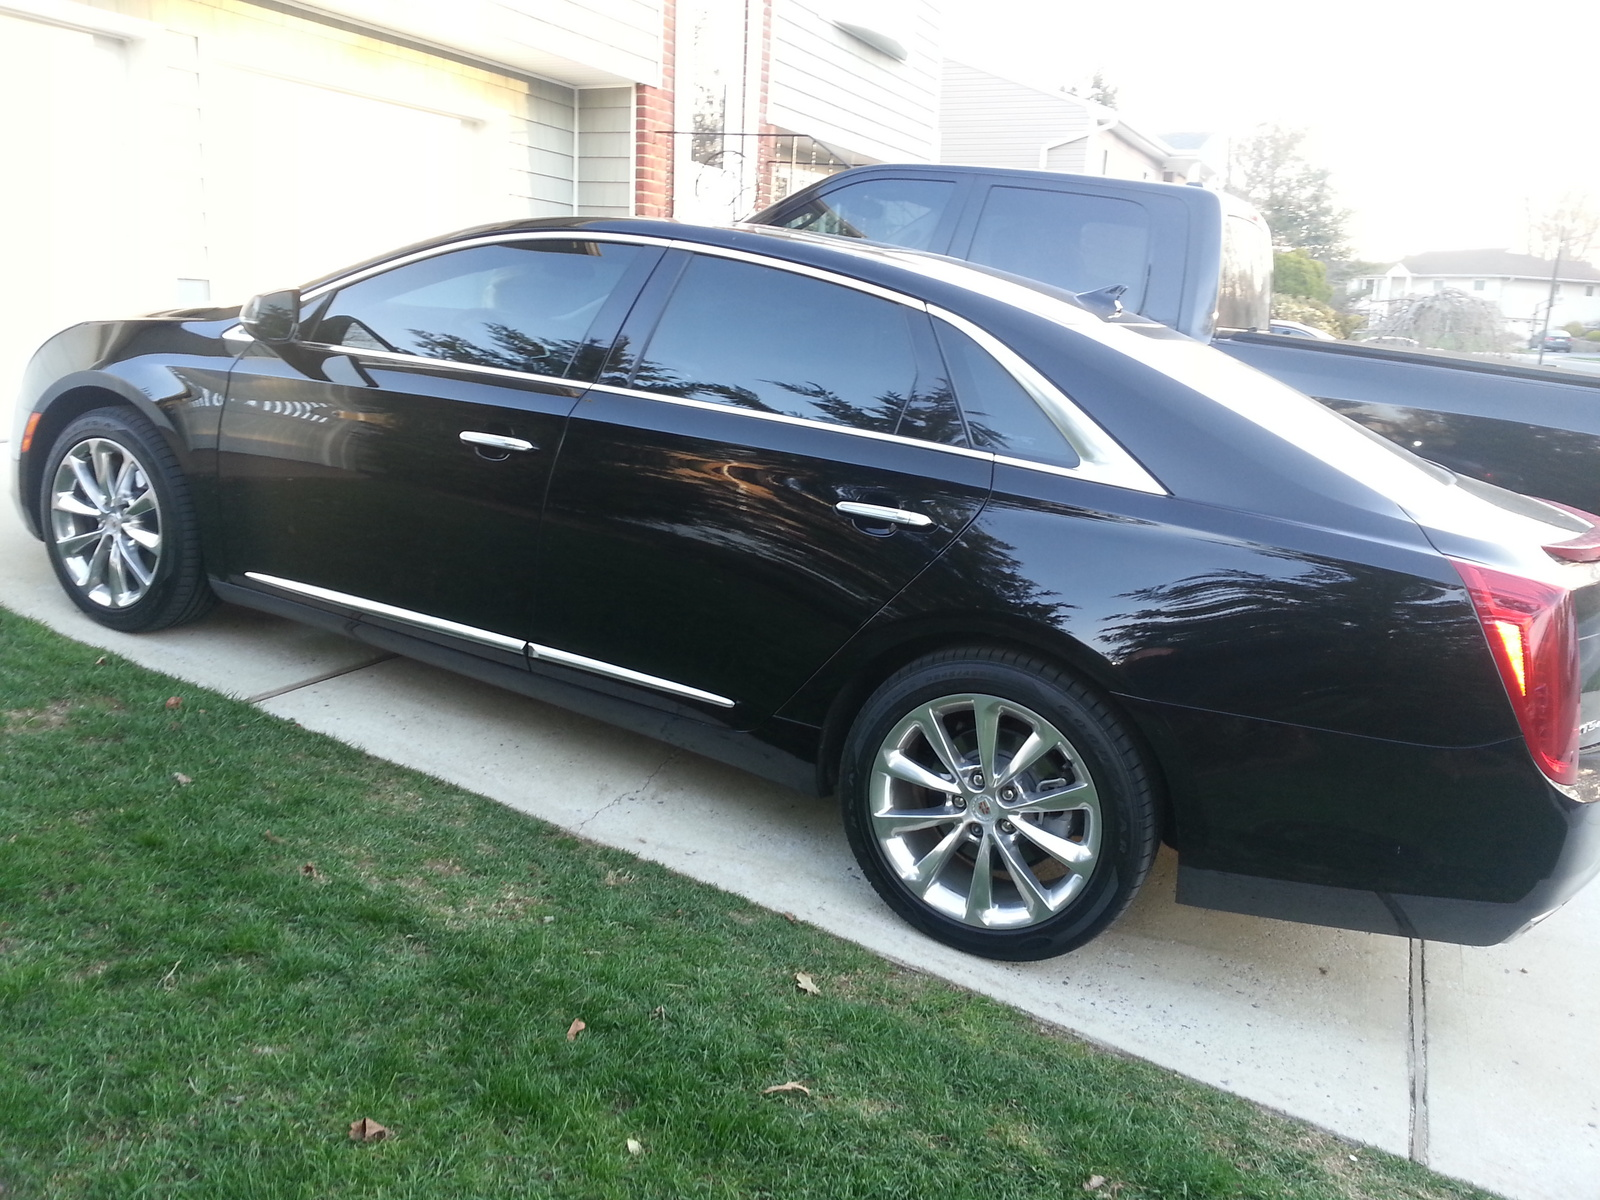 2014 cadillac xts v sport review test drive and autos weblog. Black Bedroom Furniture Sets. Home Design Ideas